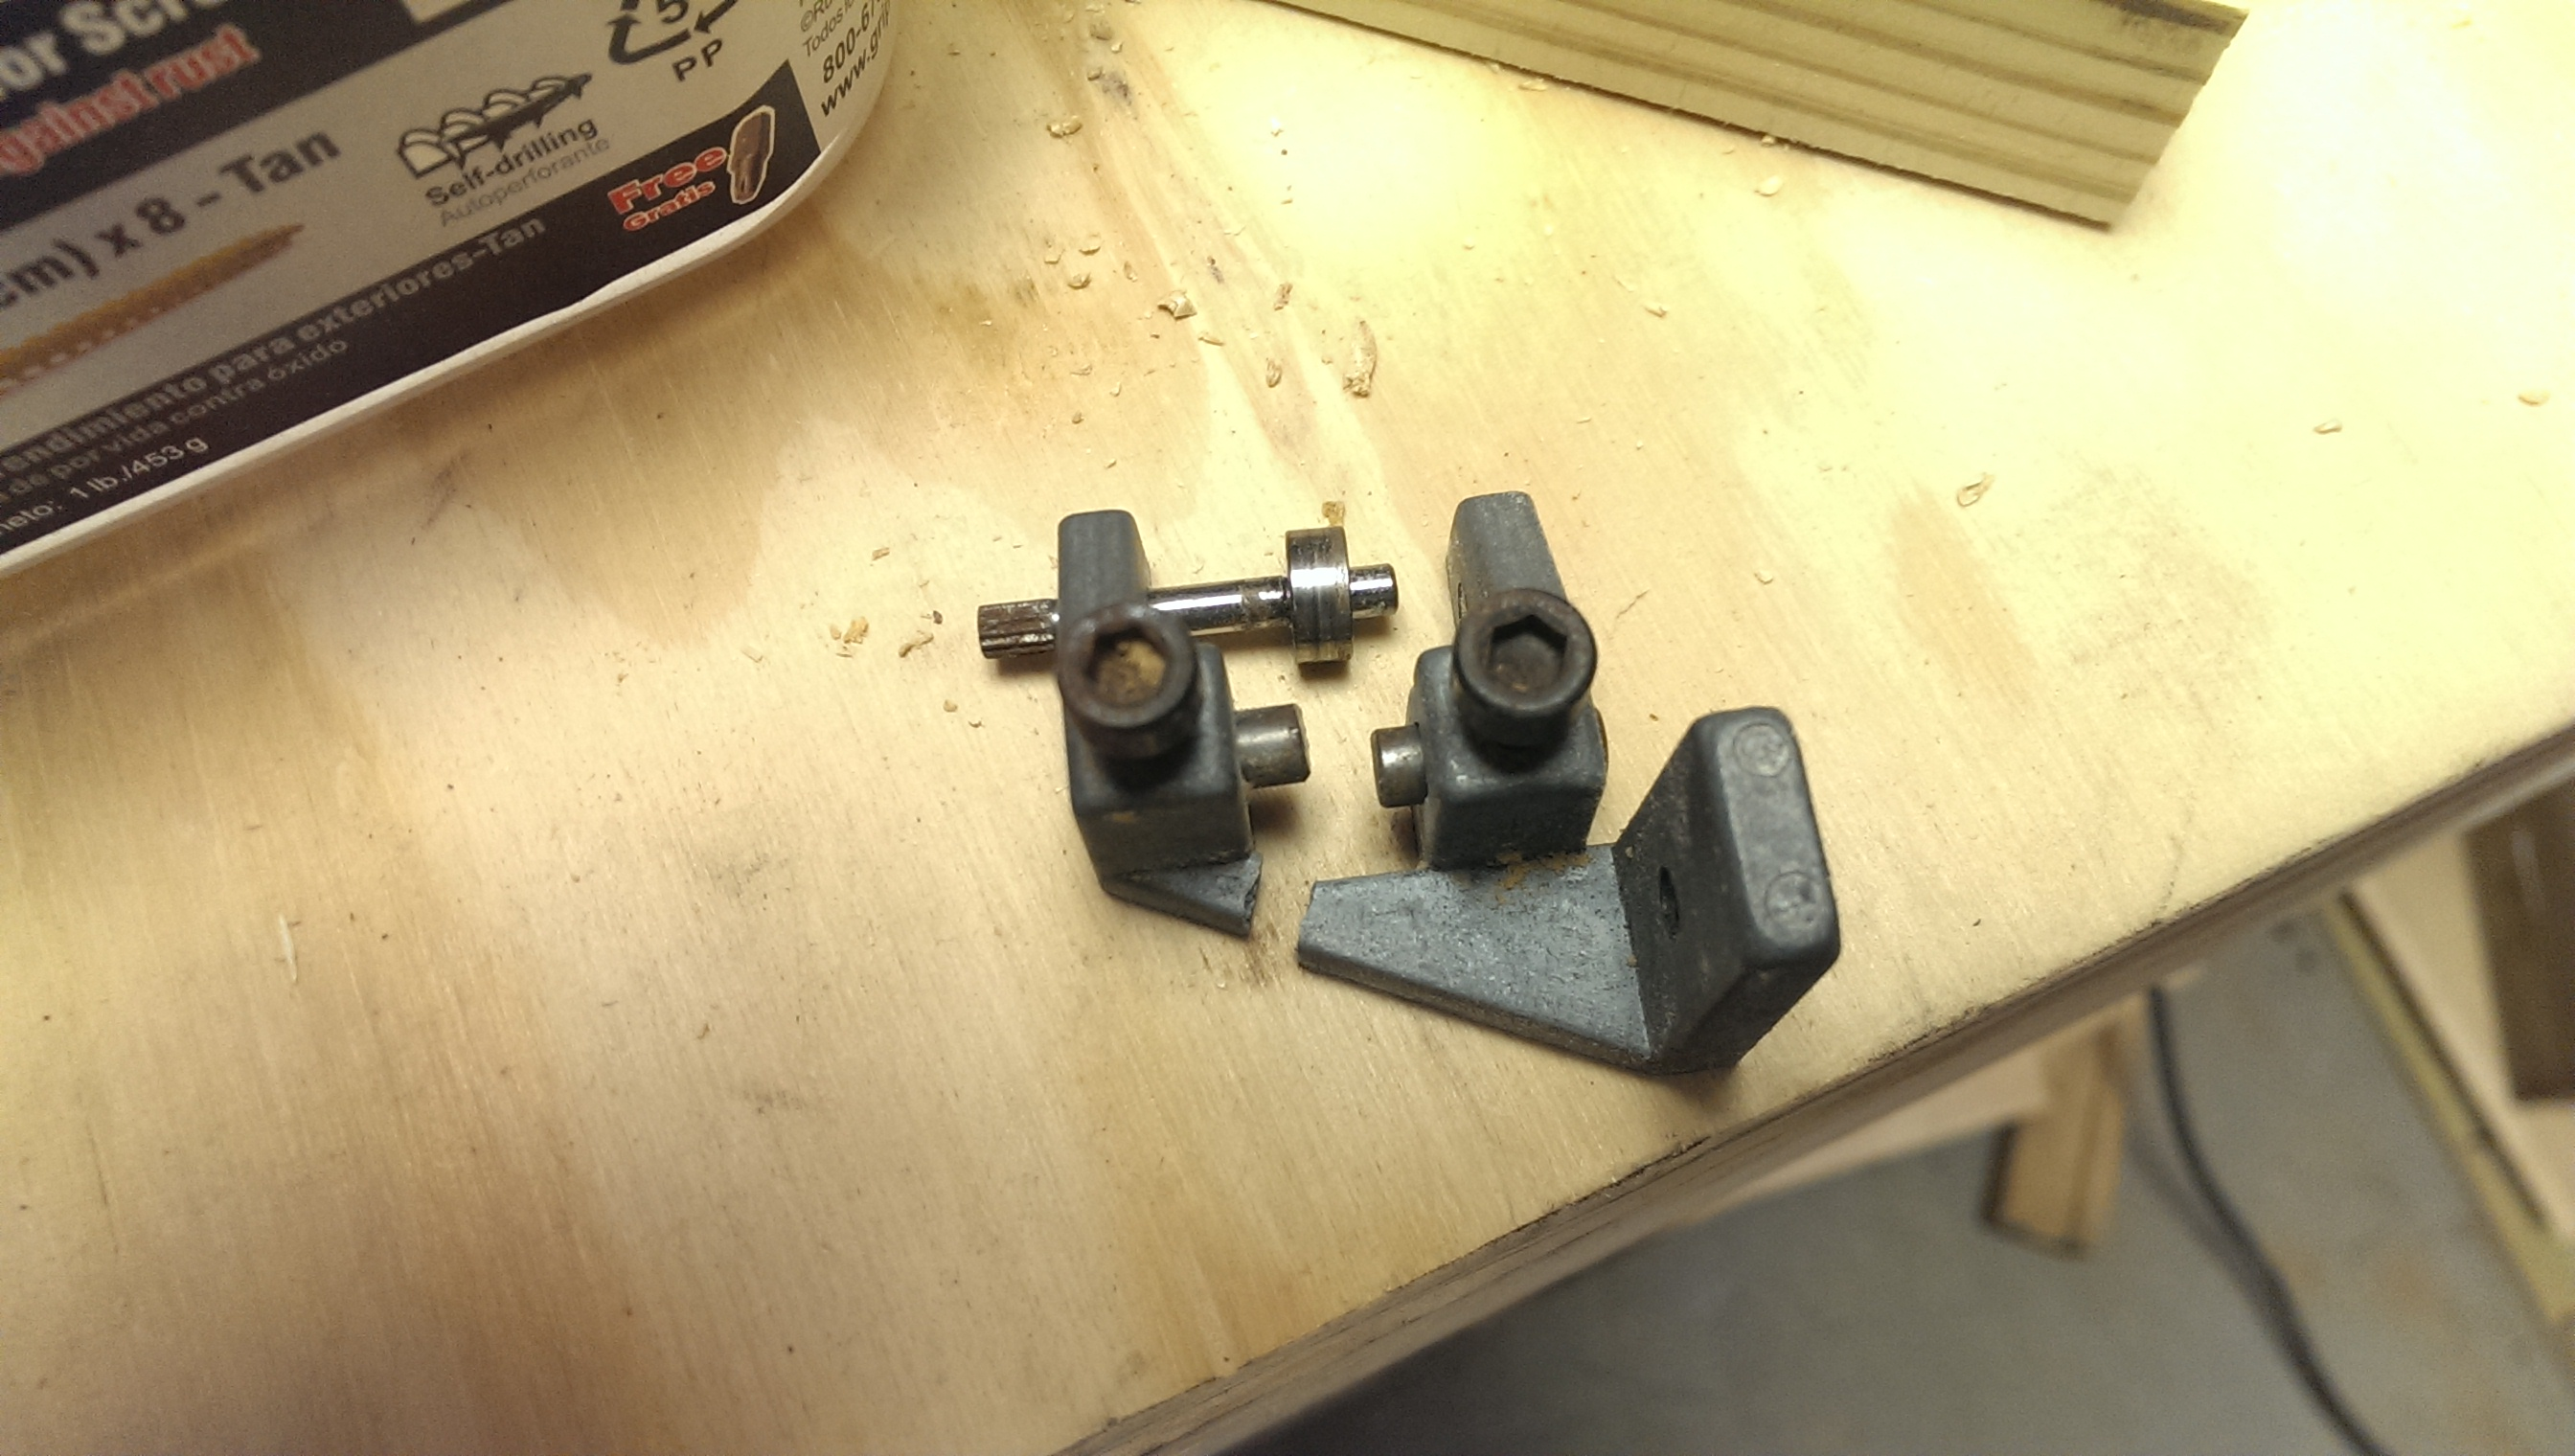 Homemade band saw blade guides insert and tires did it myself well guess that wont work anymore keyboard keysfo Choice Image